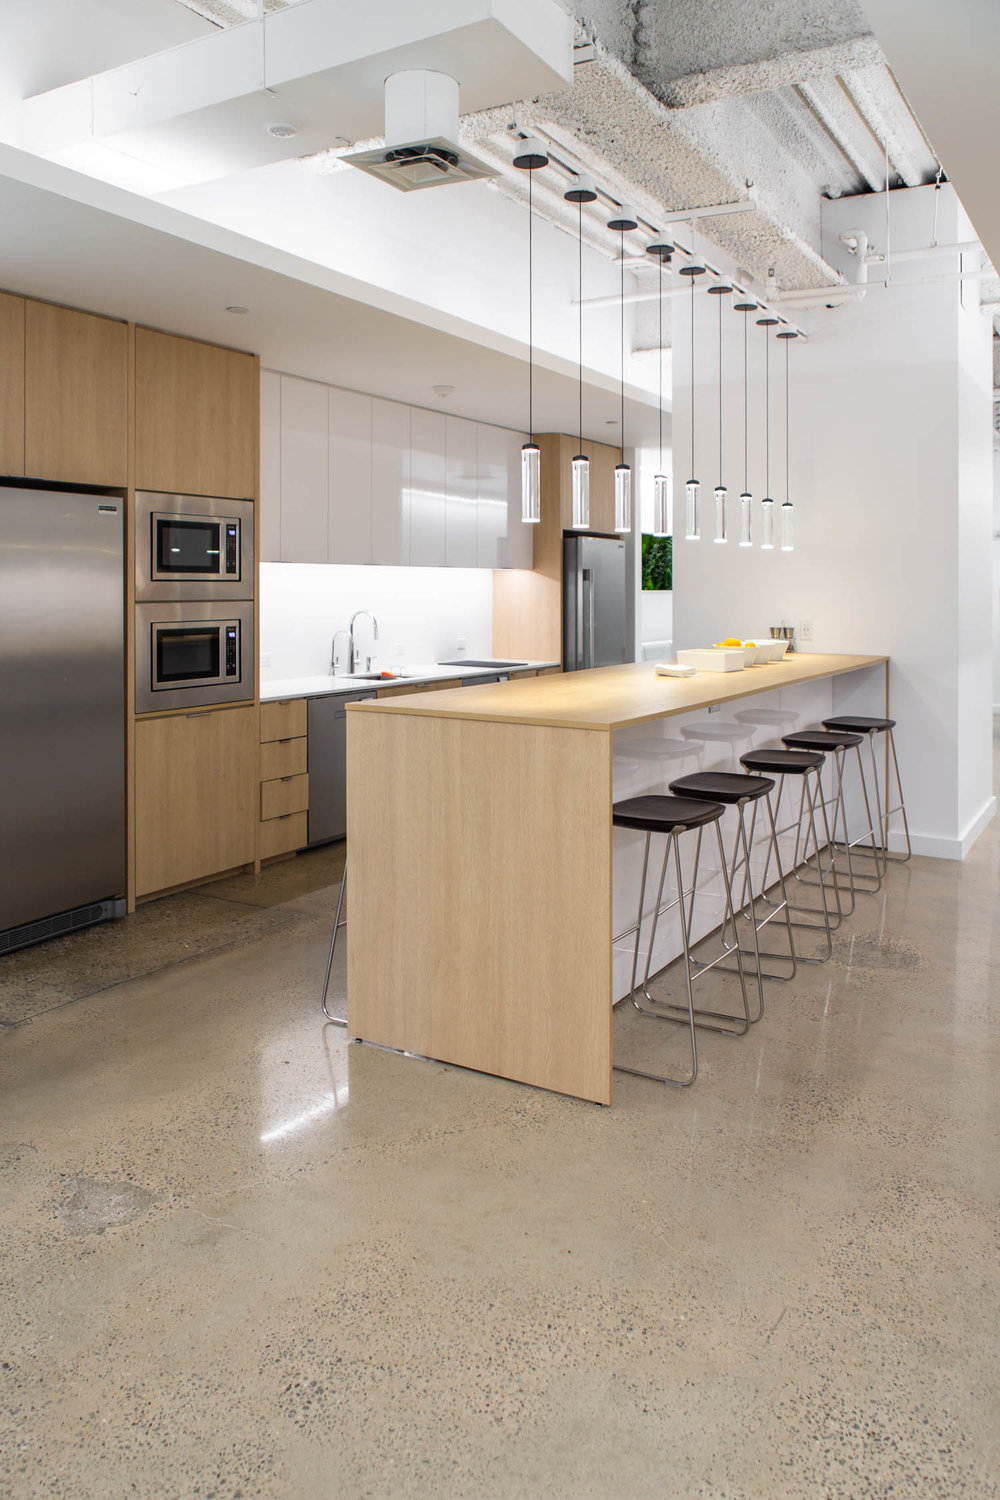 1114-6thAve-Humanscale-0036.jpg